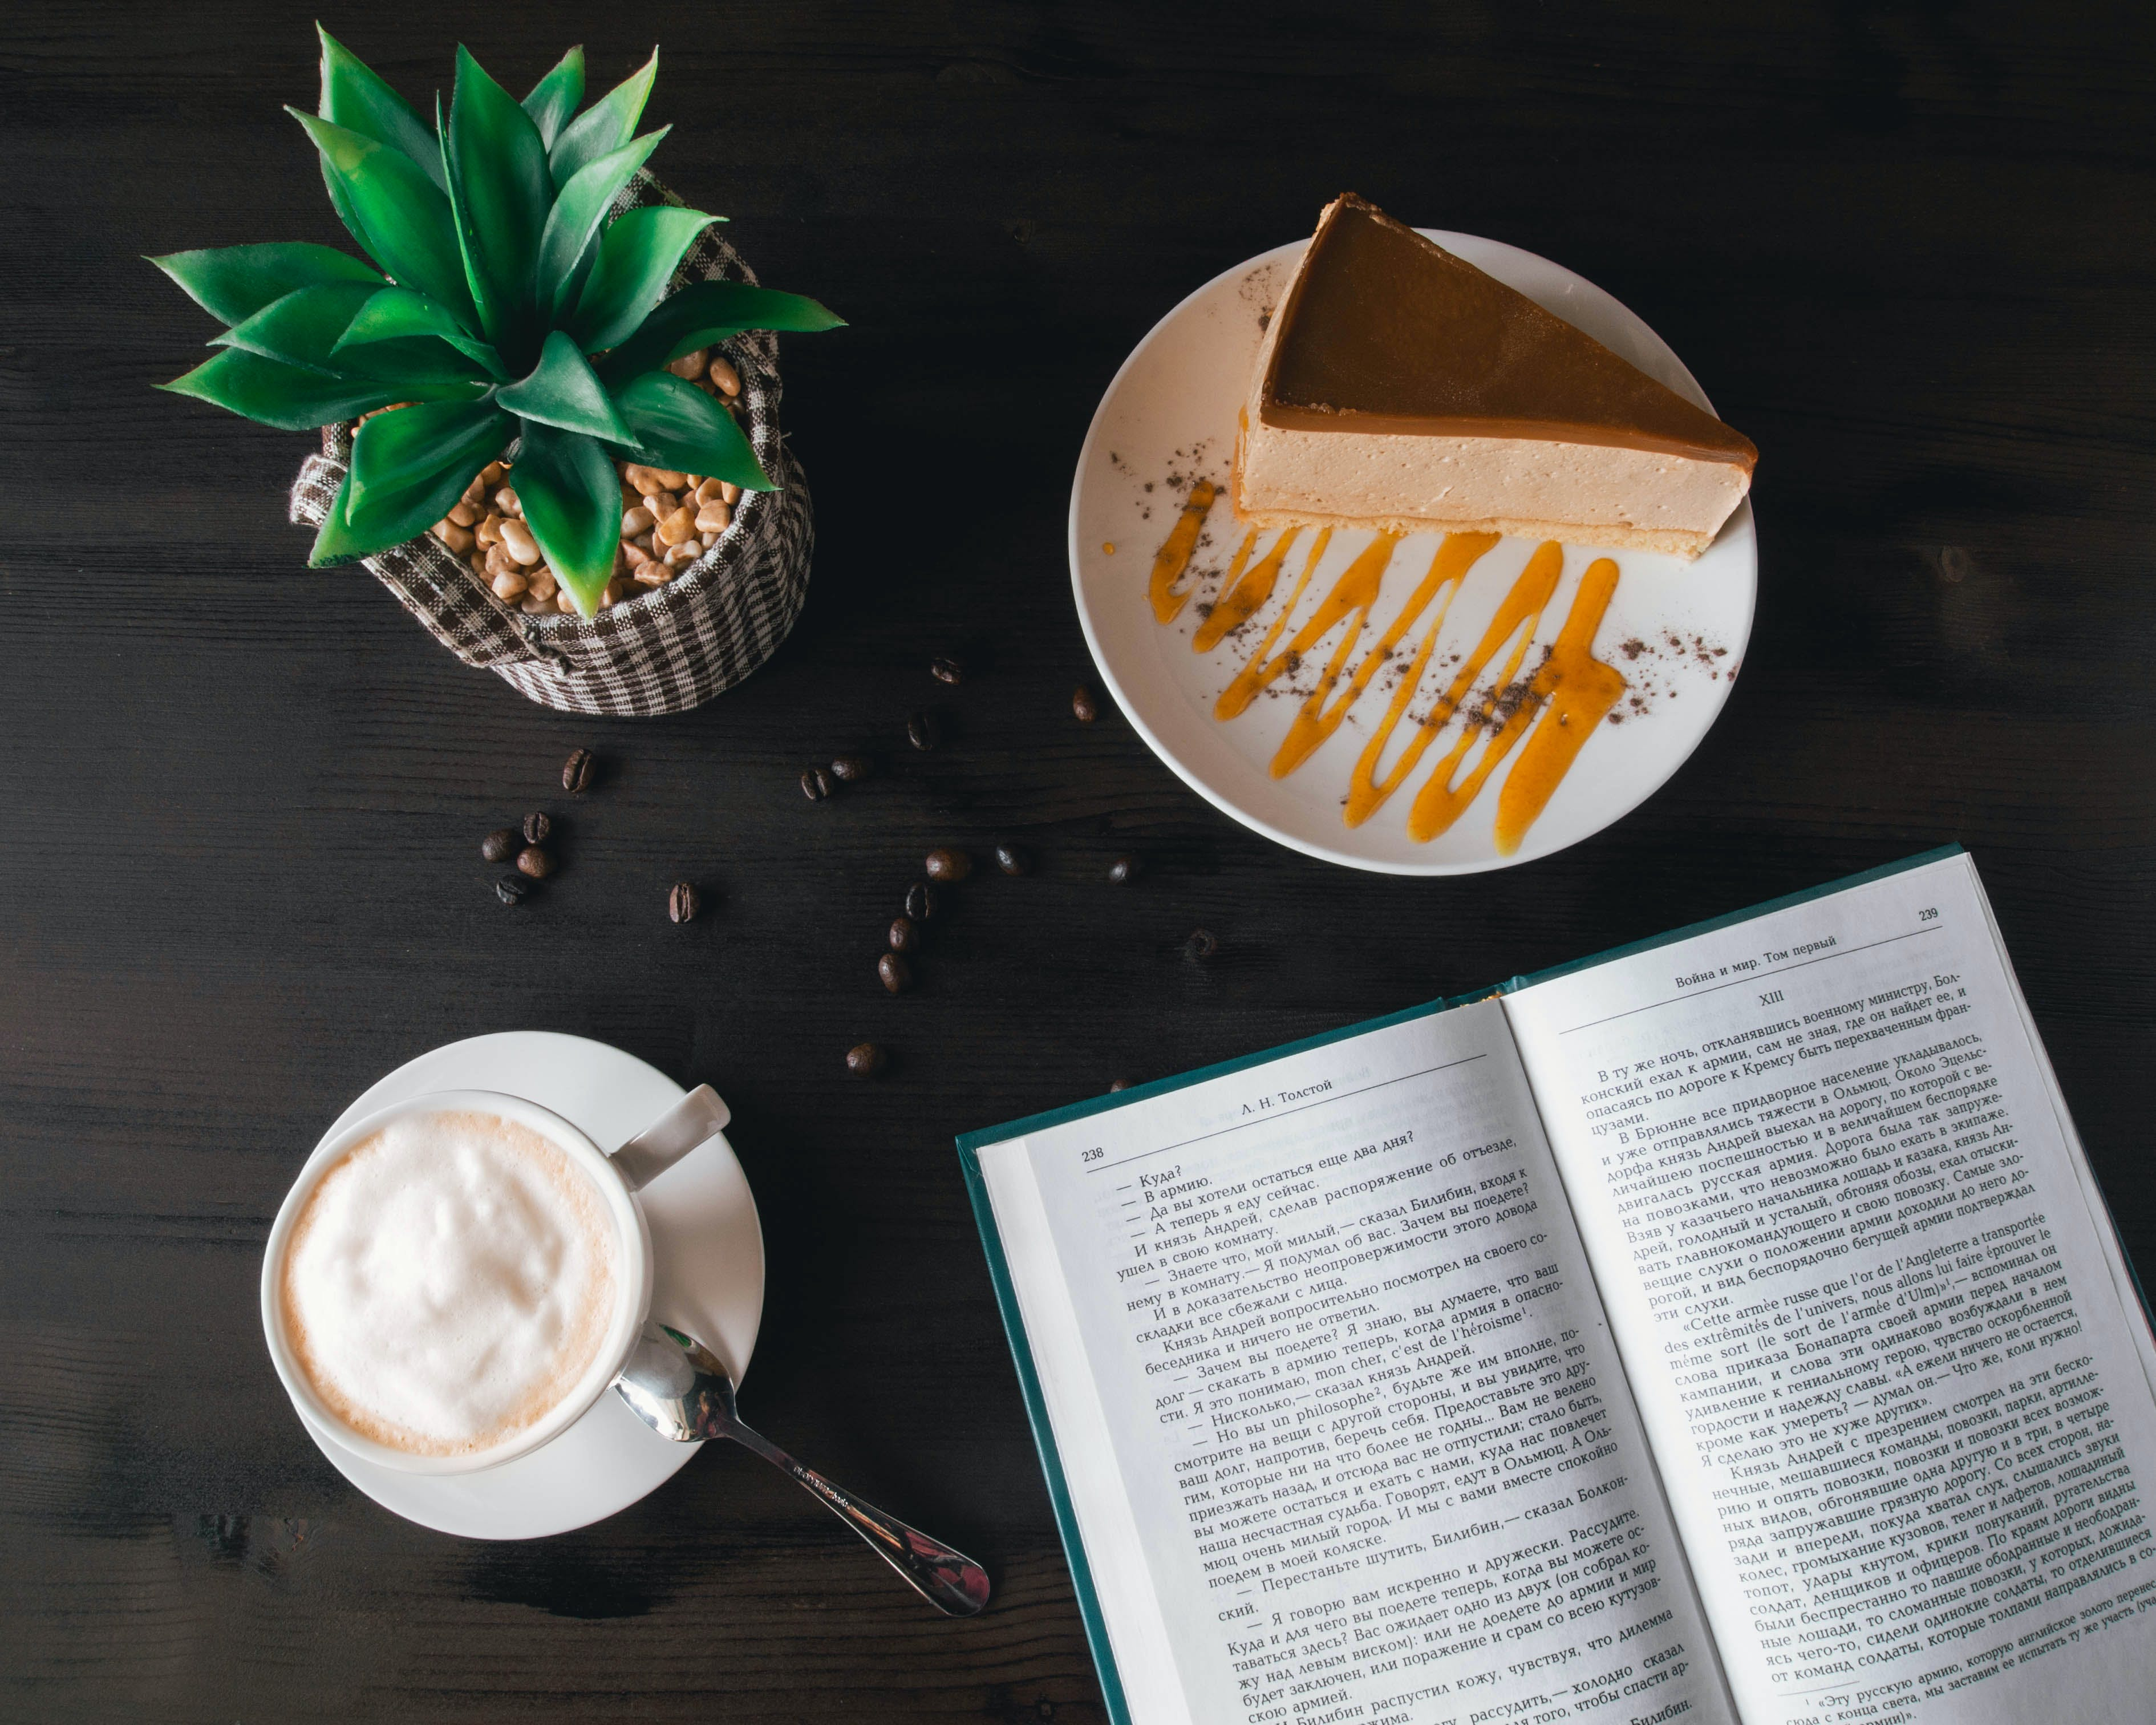 Opened Book Near Custard Cake and Coffee